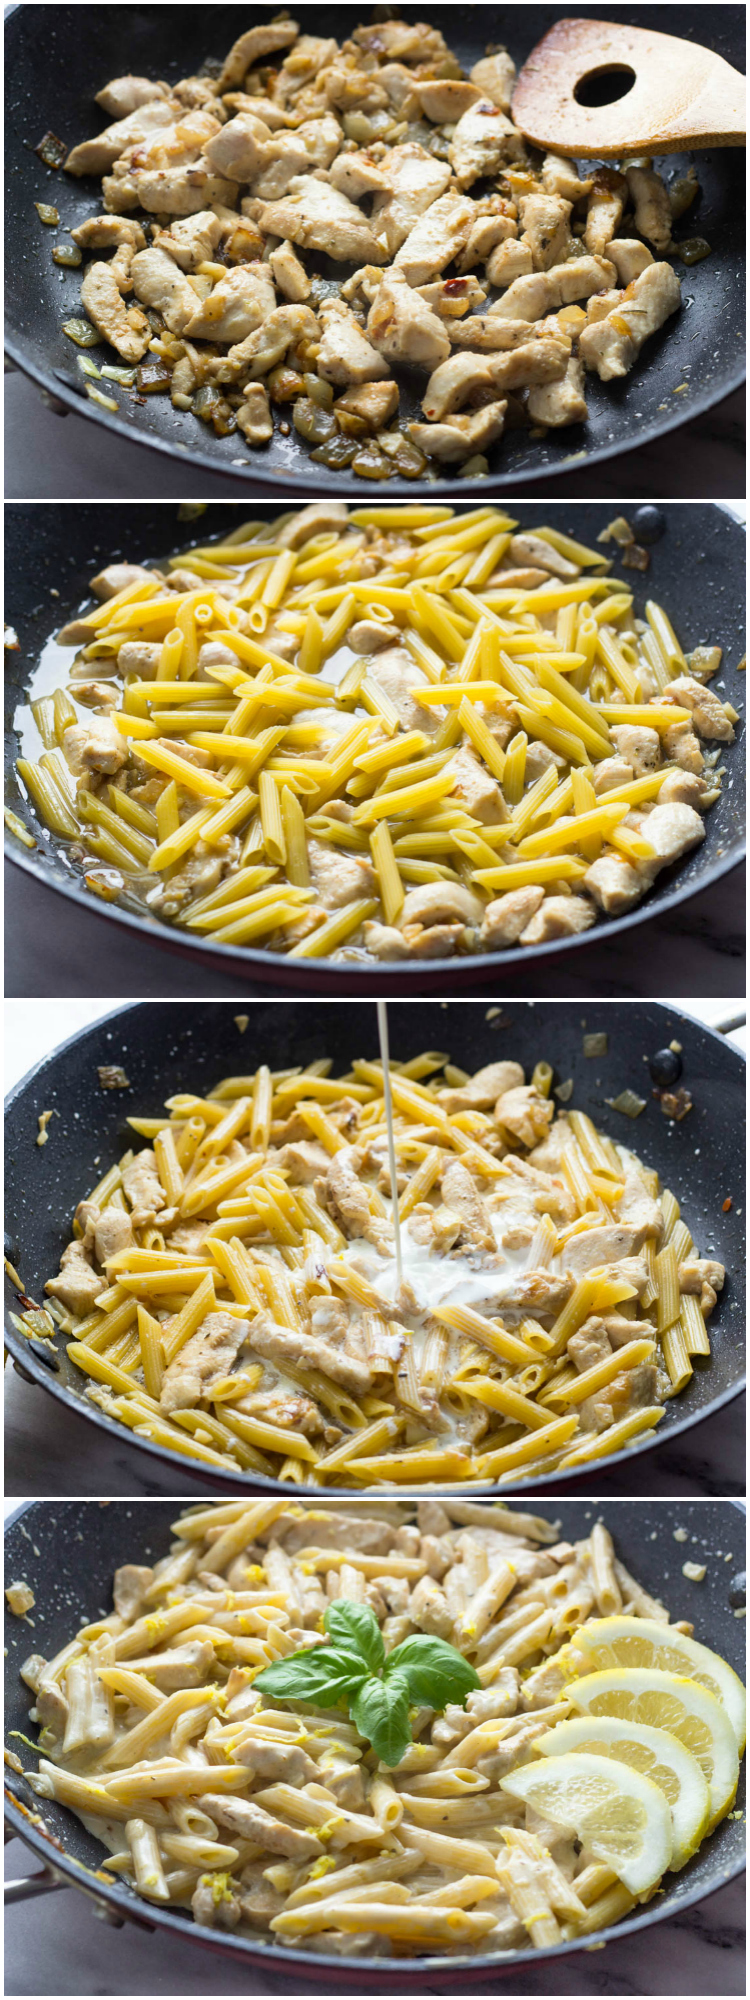 One Pot Creamy Lemon Chicken Pasta #GimmeDelicious #Easy #penne